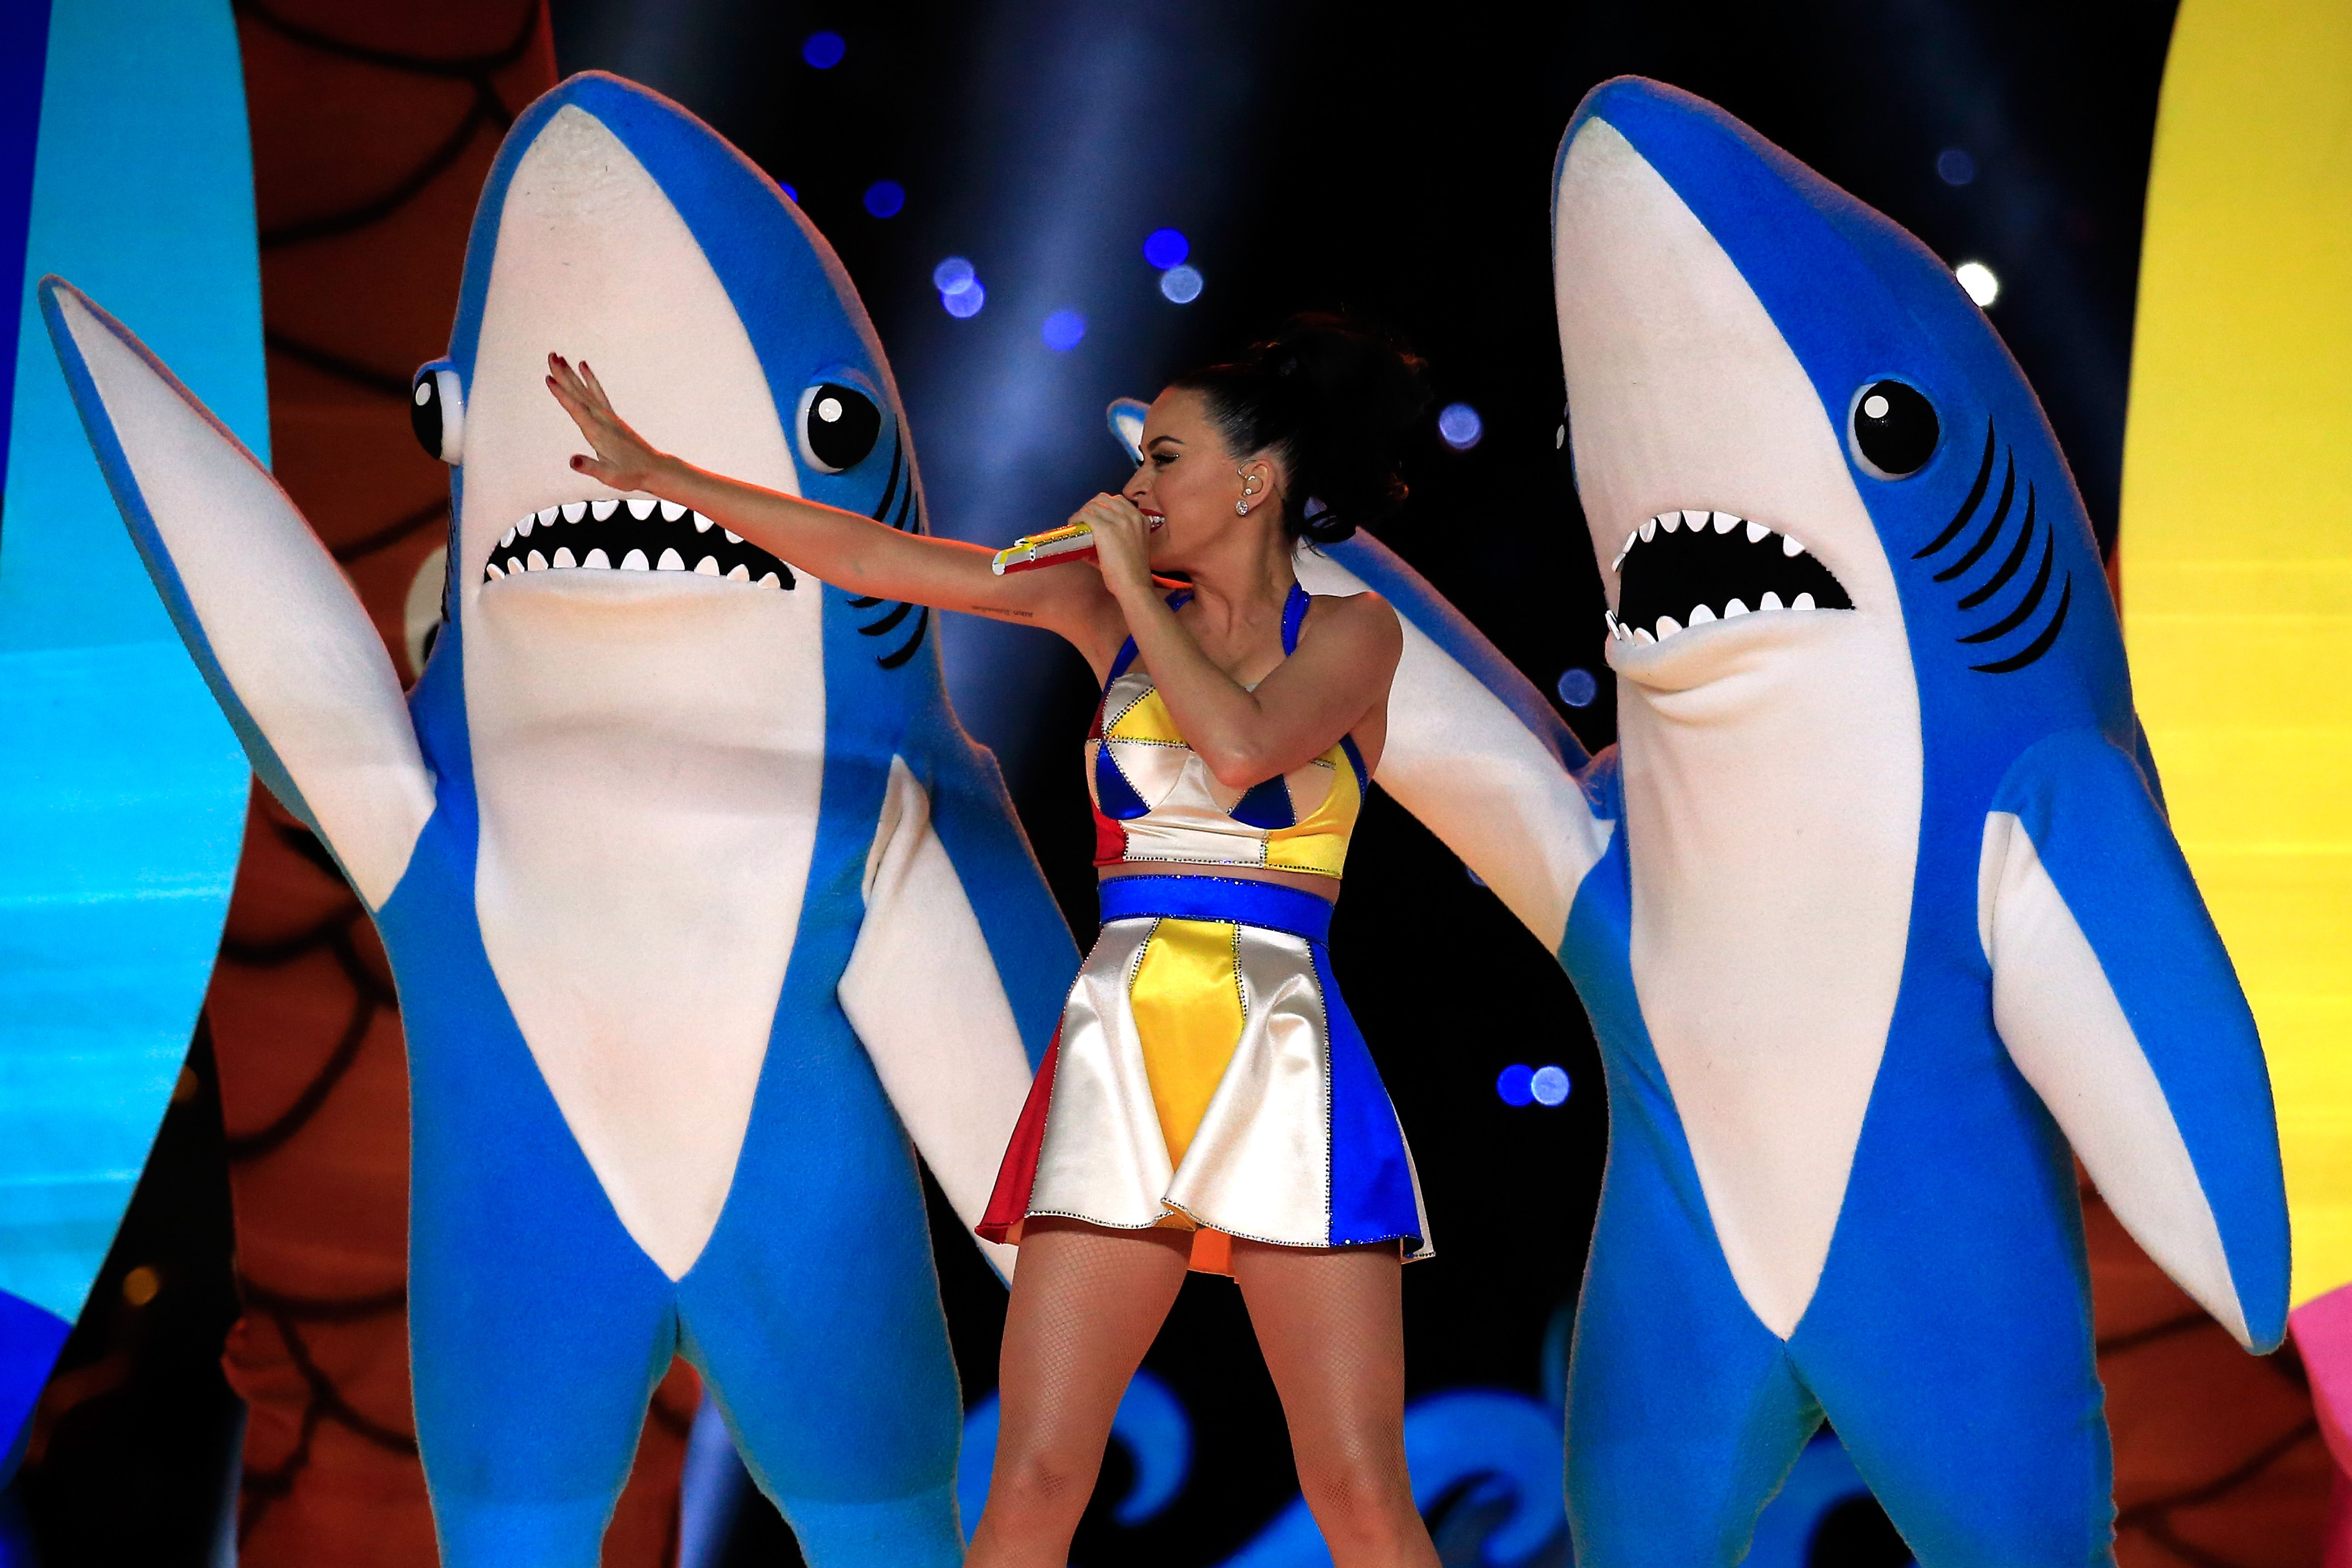 Super Bowl XLIX: The Shark That Launched a Thousand Gifs (2015)